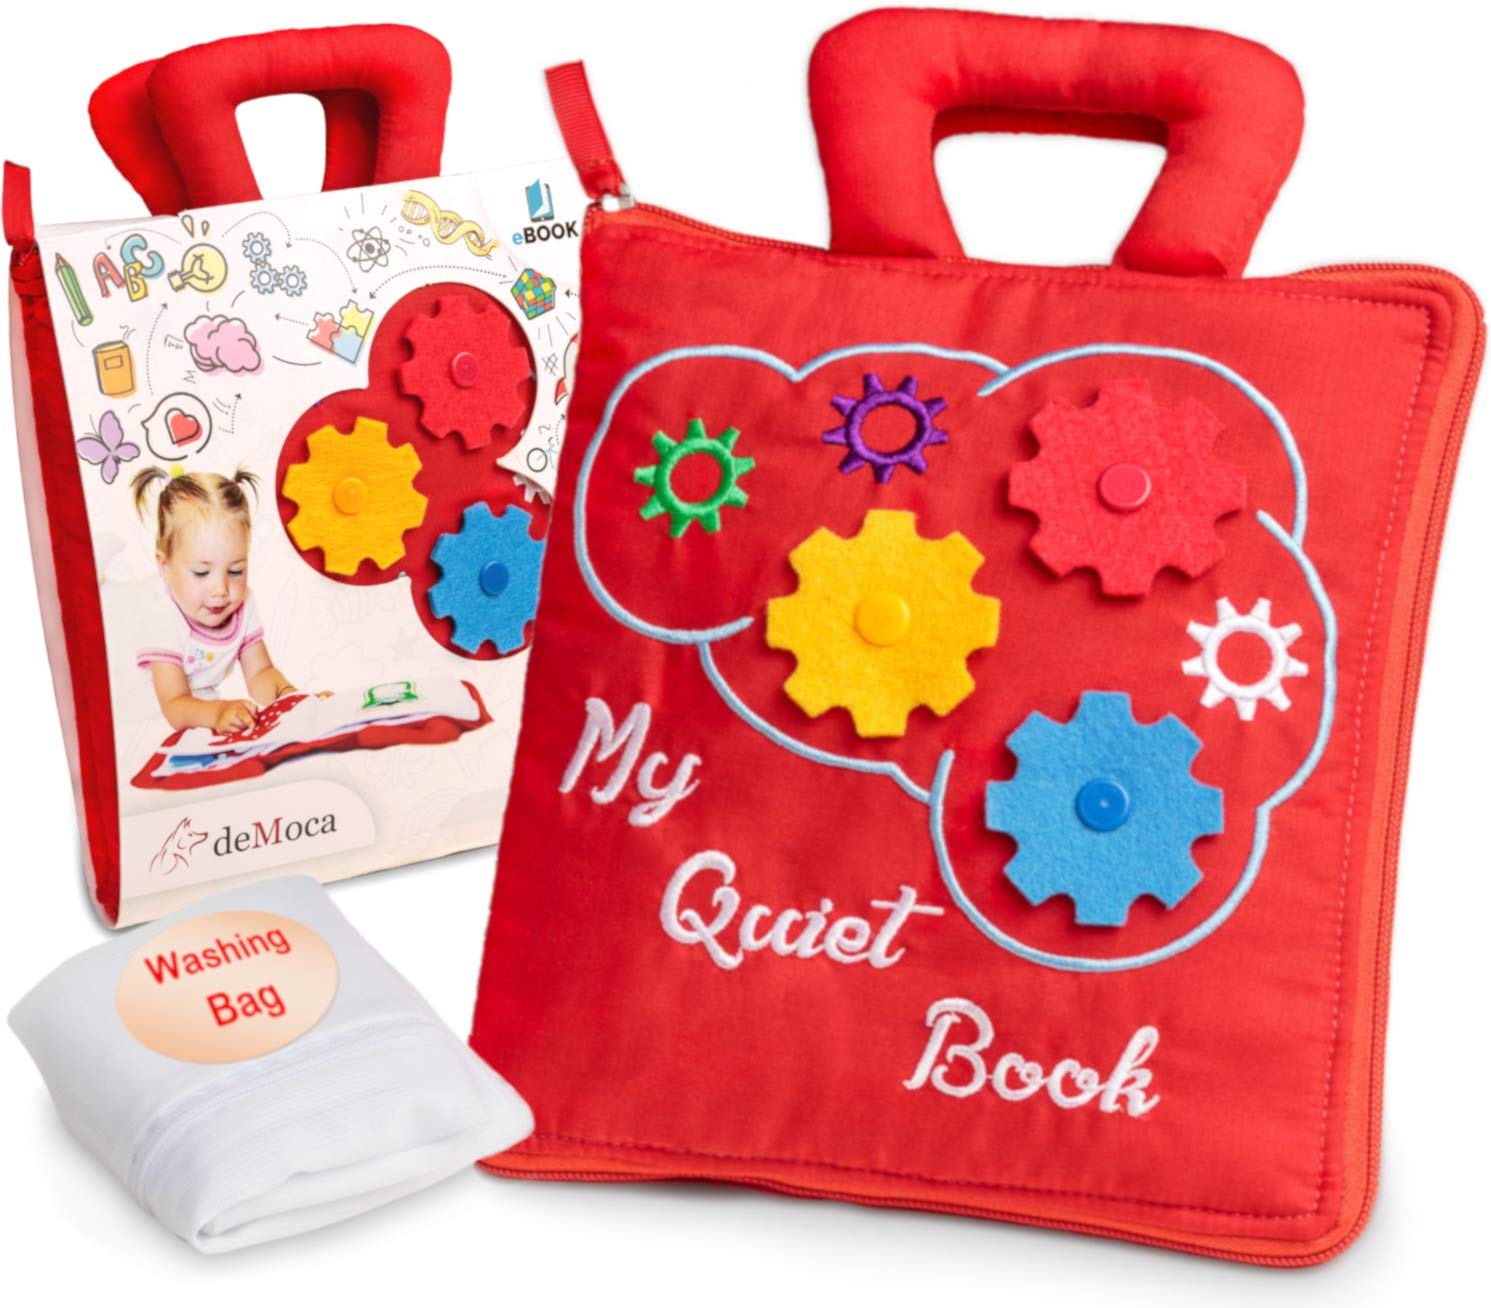 deMoca Montessori Activity Quiet Book - Toddlers Travel Toys Soft Busy Book - Early Preschool Learning Sensory How to Basic Life Skills Activities for Boys & Girls + Zipper Bag + eBook (Red)